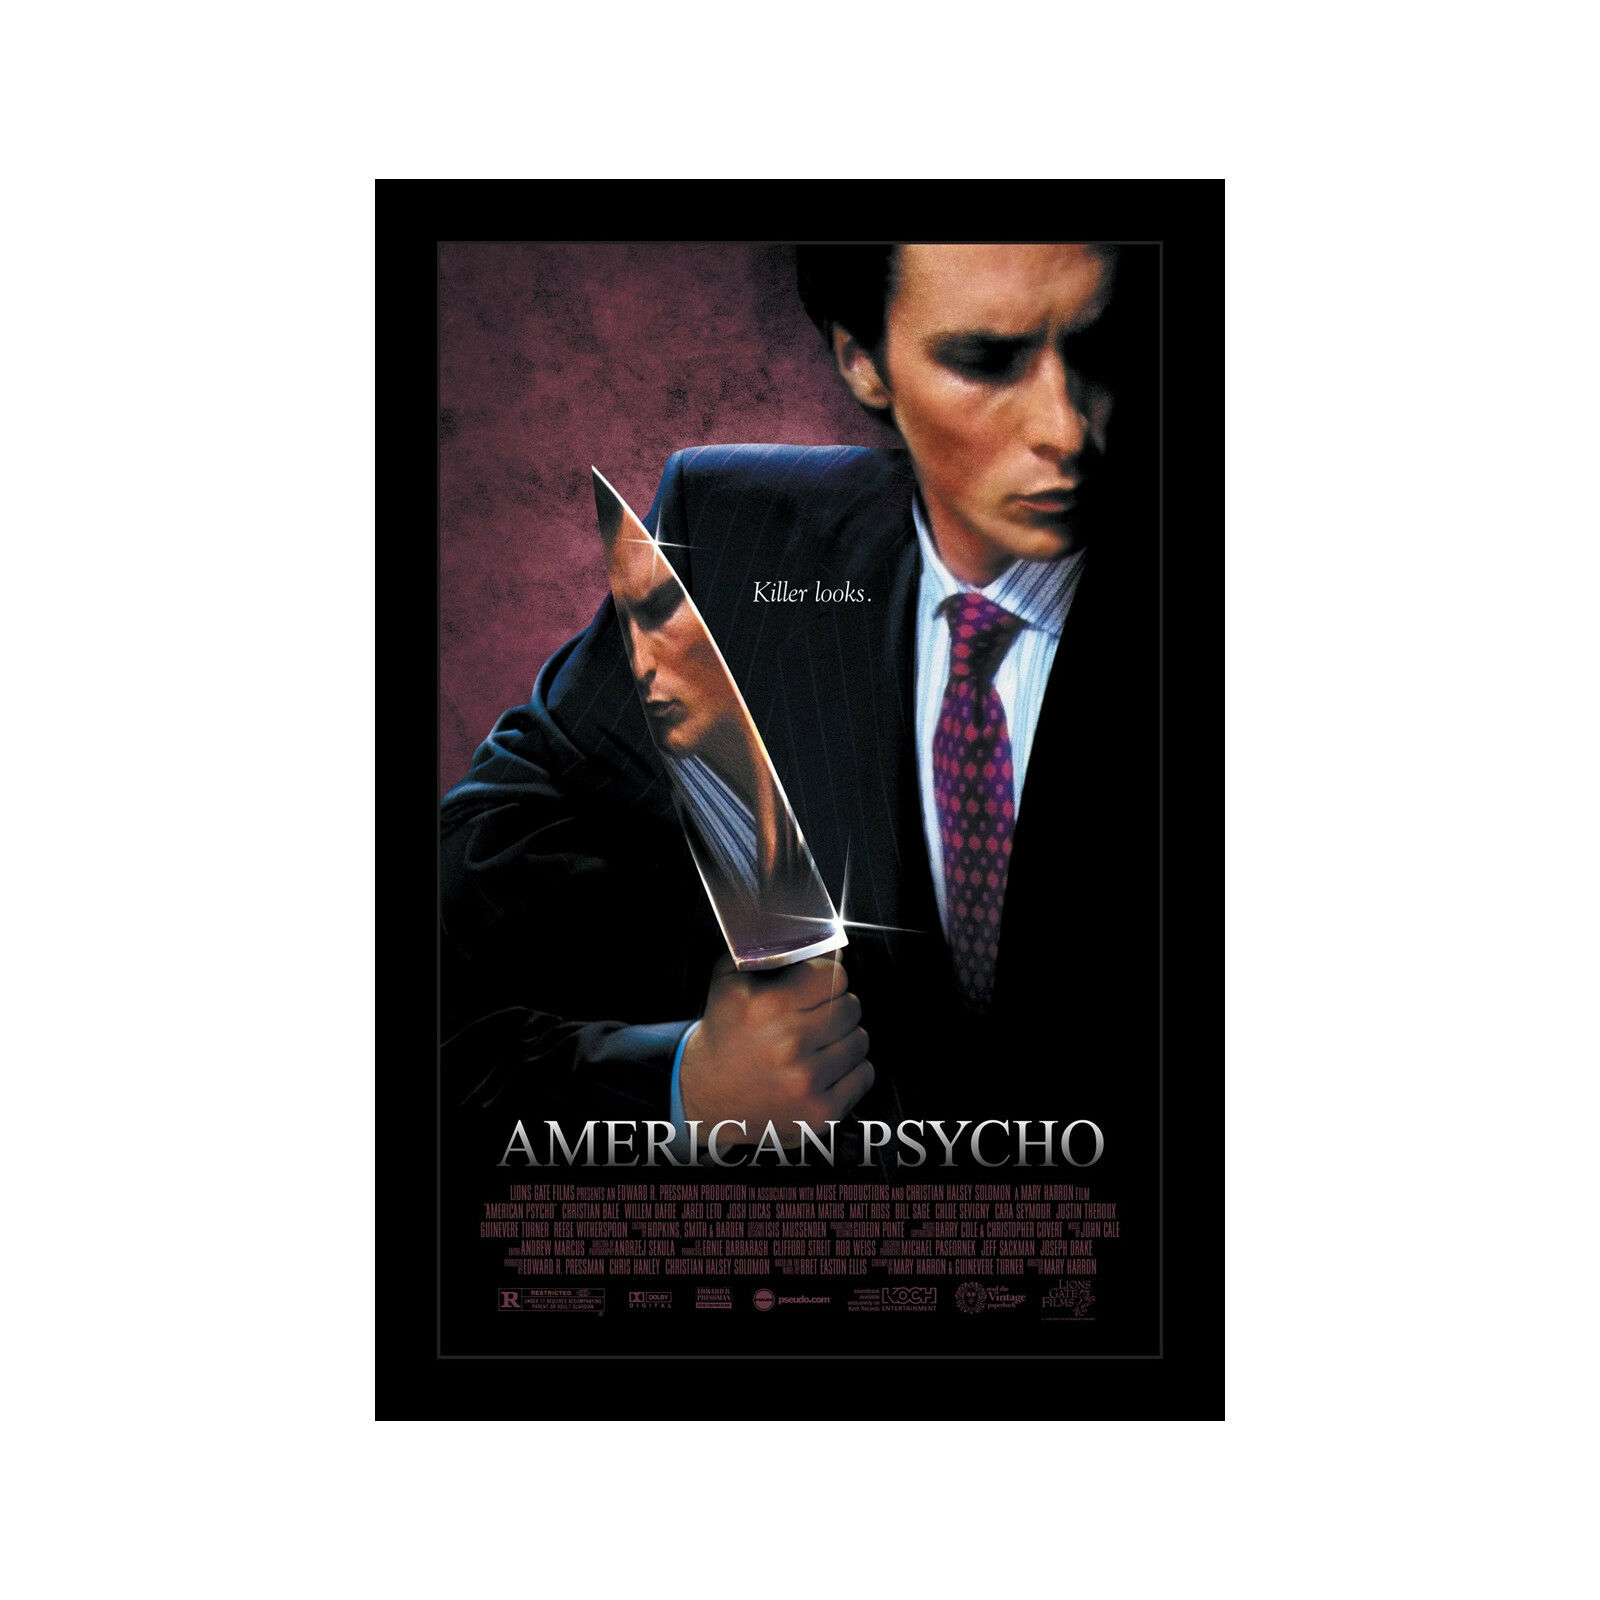 AMERICAN PSYCHO - 11x17 Framed Movie Poster by Wallspace